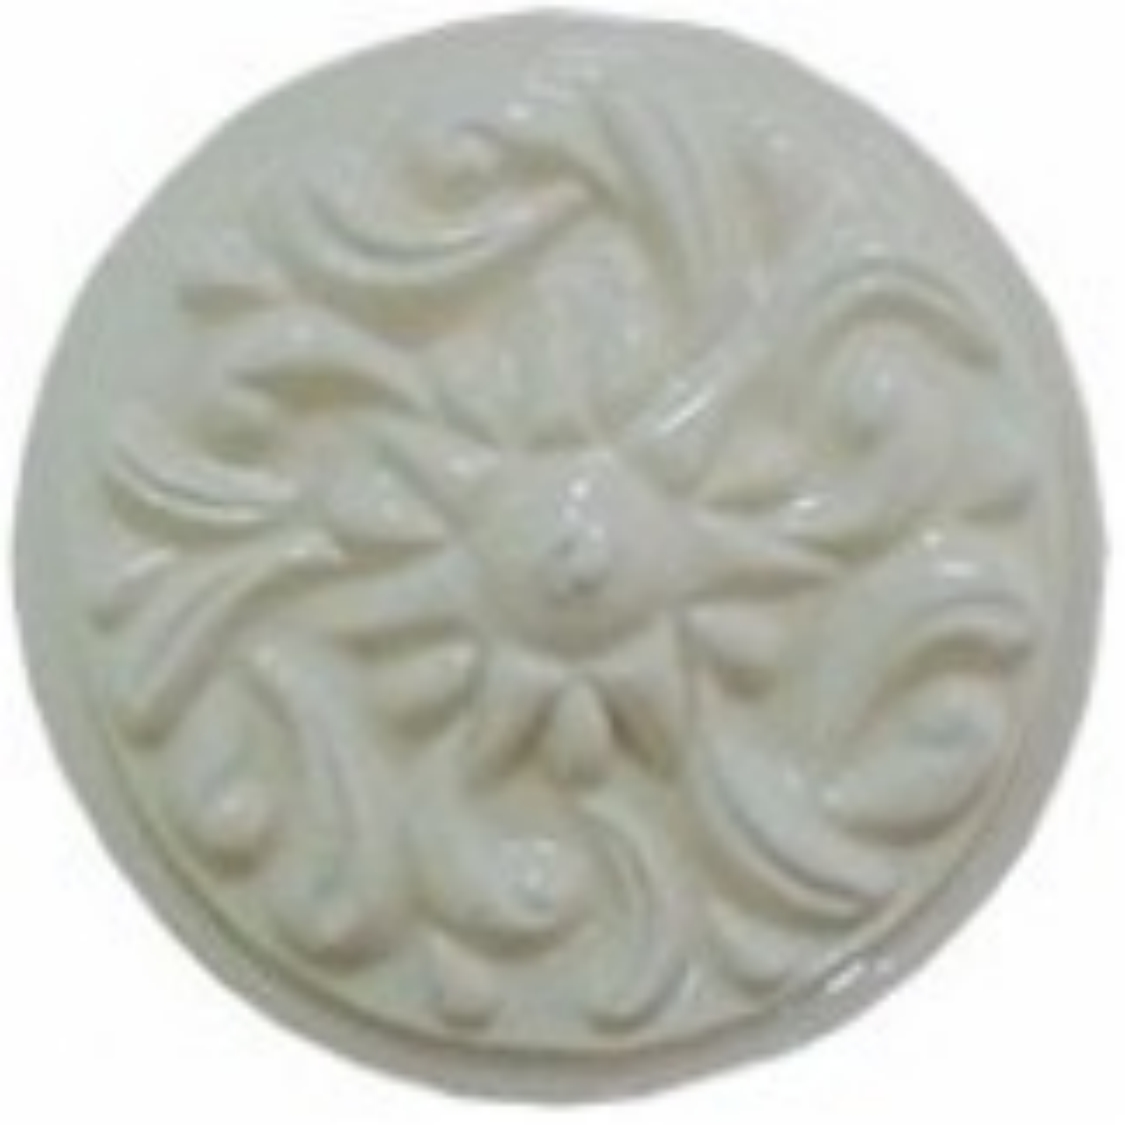 handmad circle ceramic tile with a high relief circular design and a one color glaze